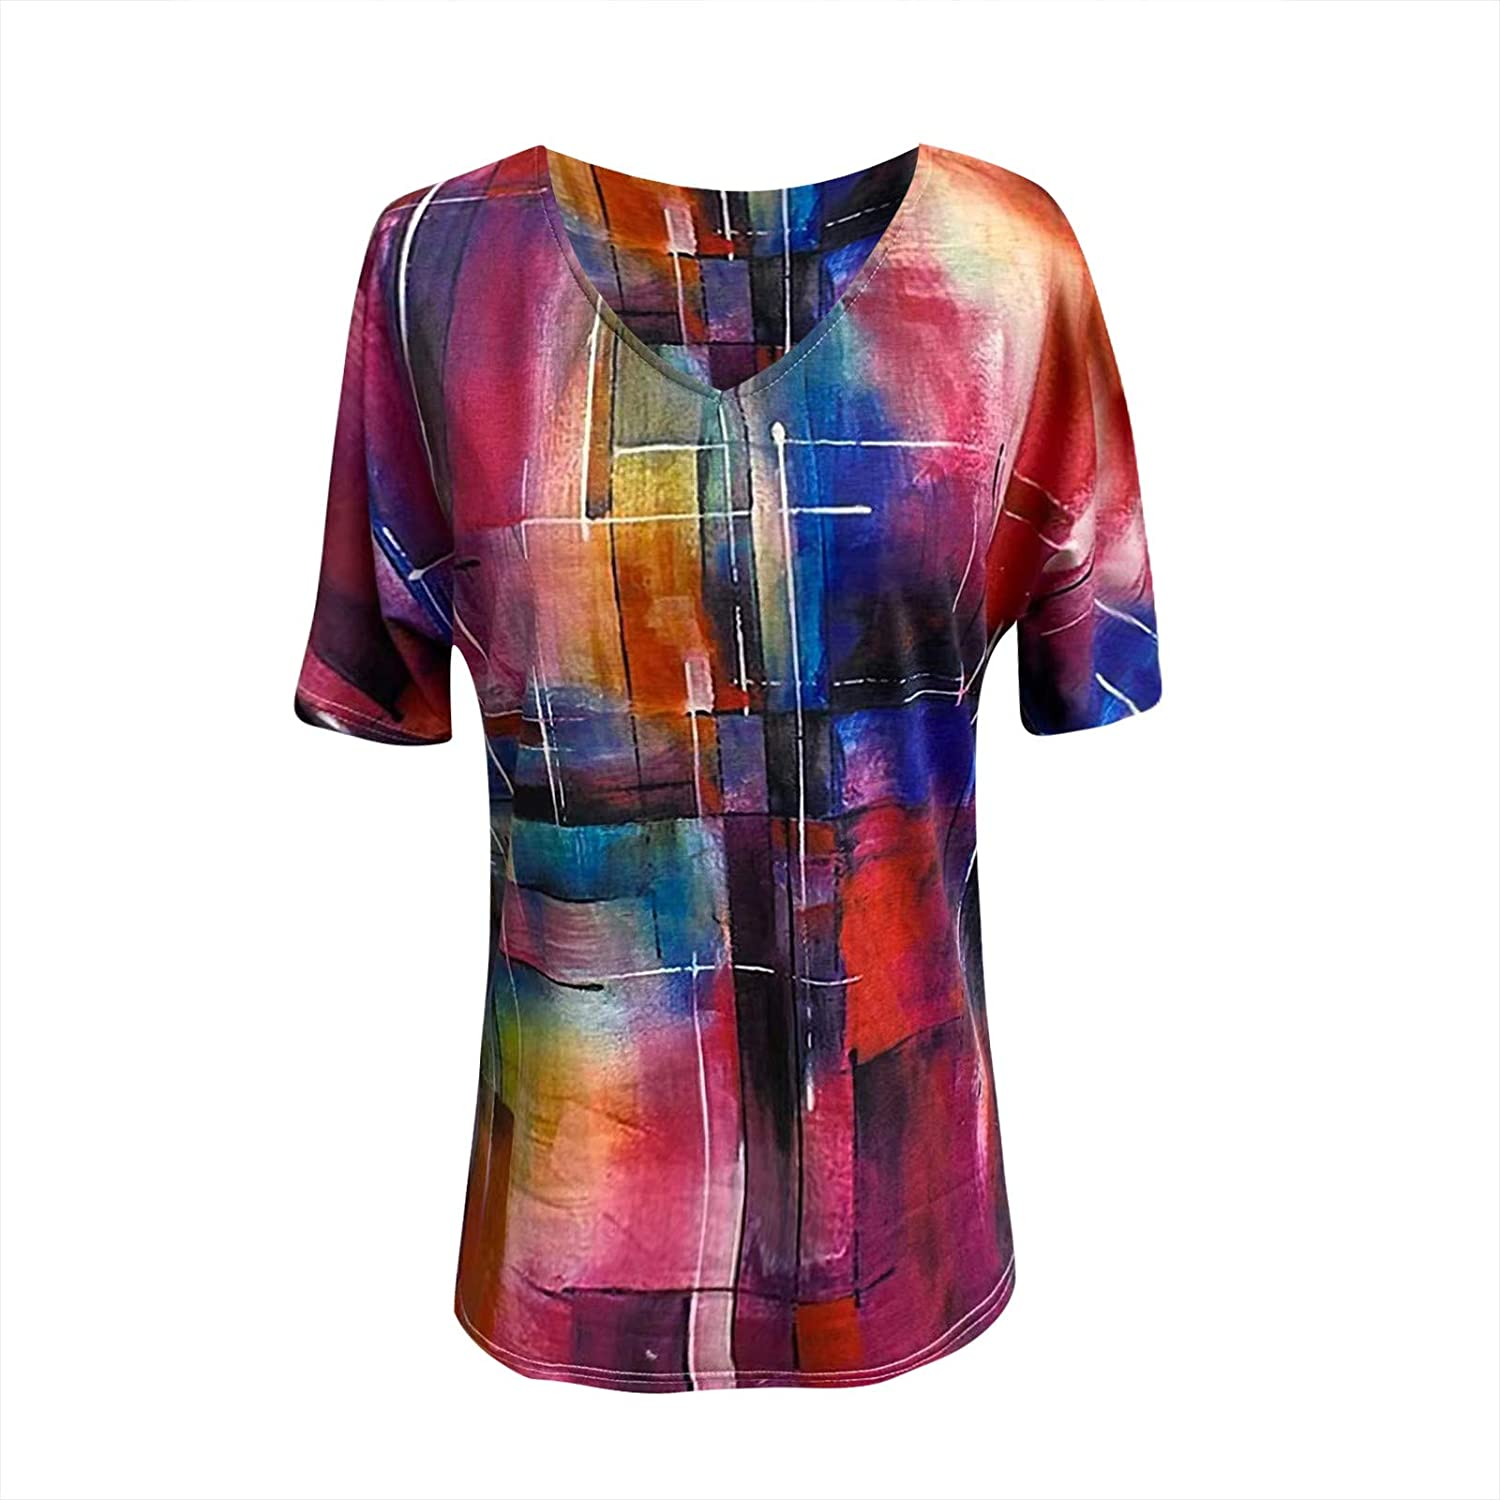 Womens Summer Tops,Women's Tees Casual V Neck Tops Cute Printed Loose Blouses Short Sleeve Tunic Shirts